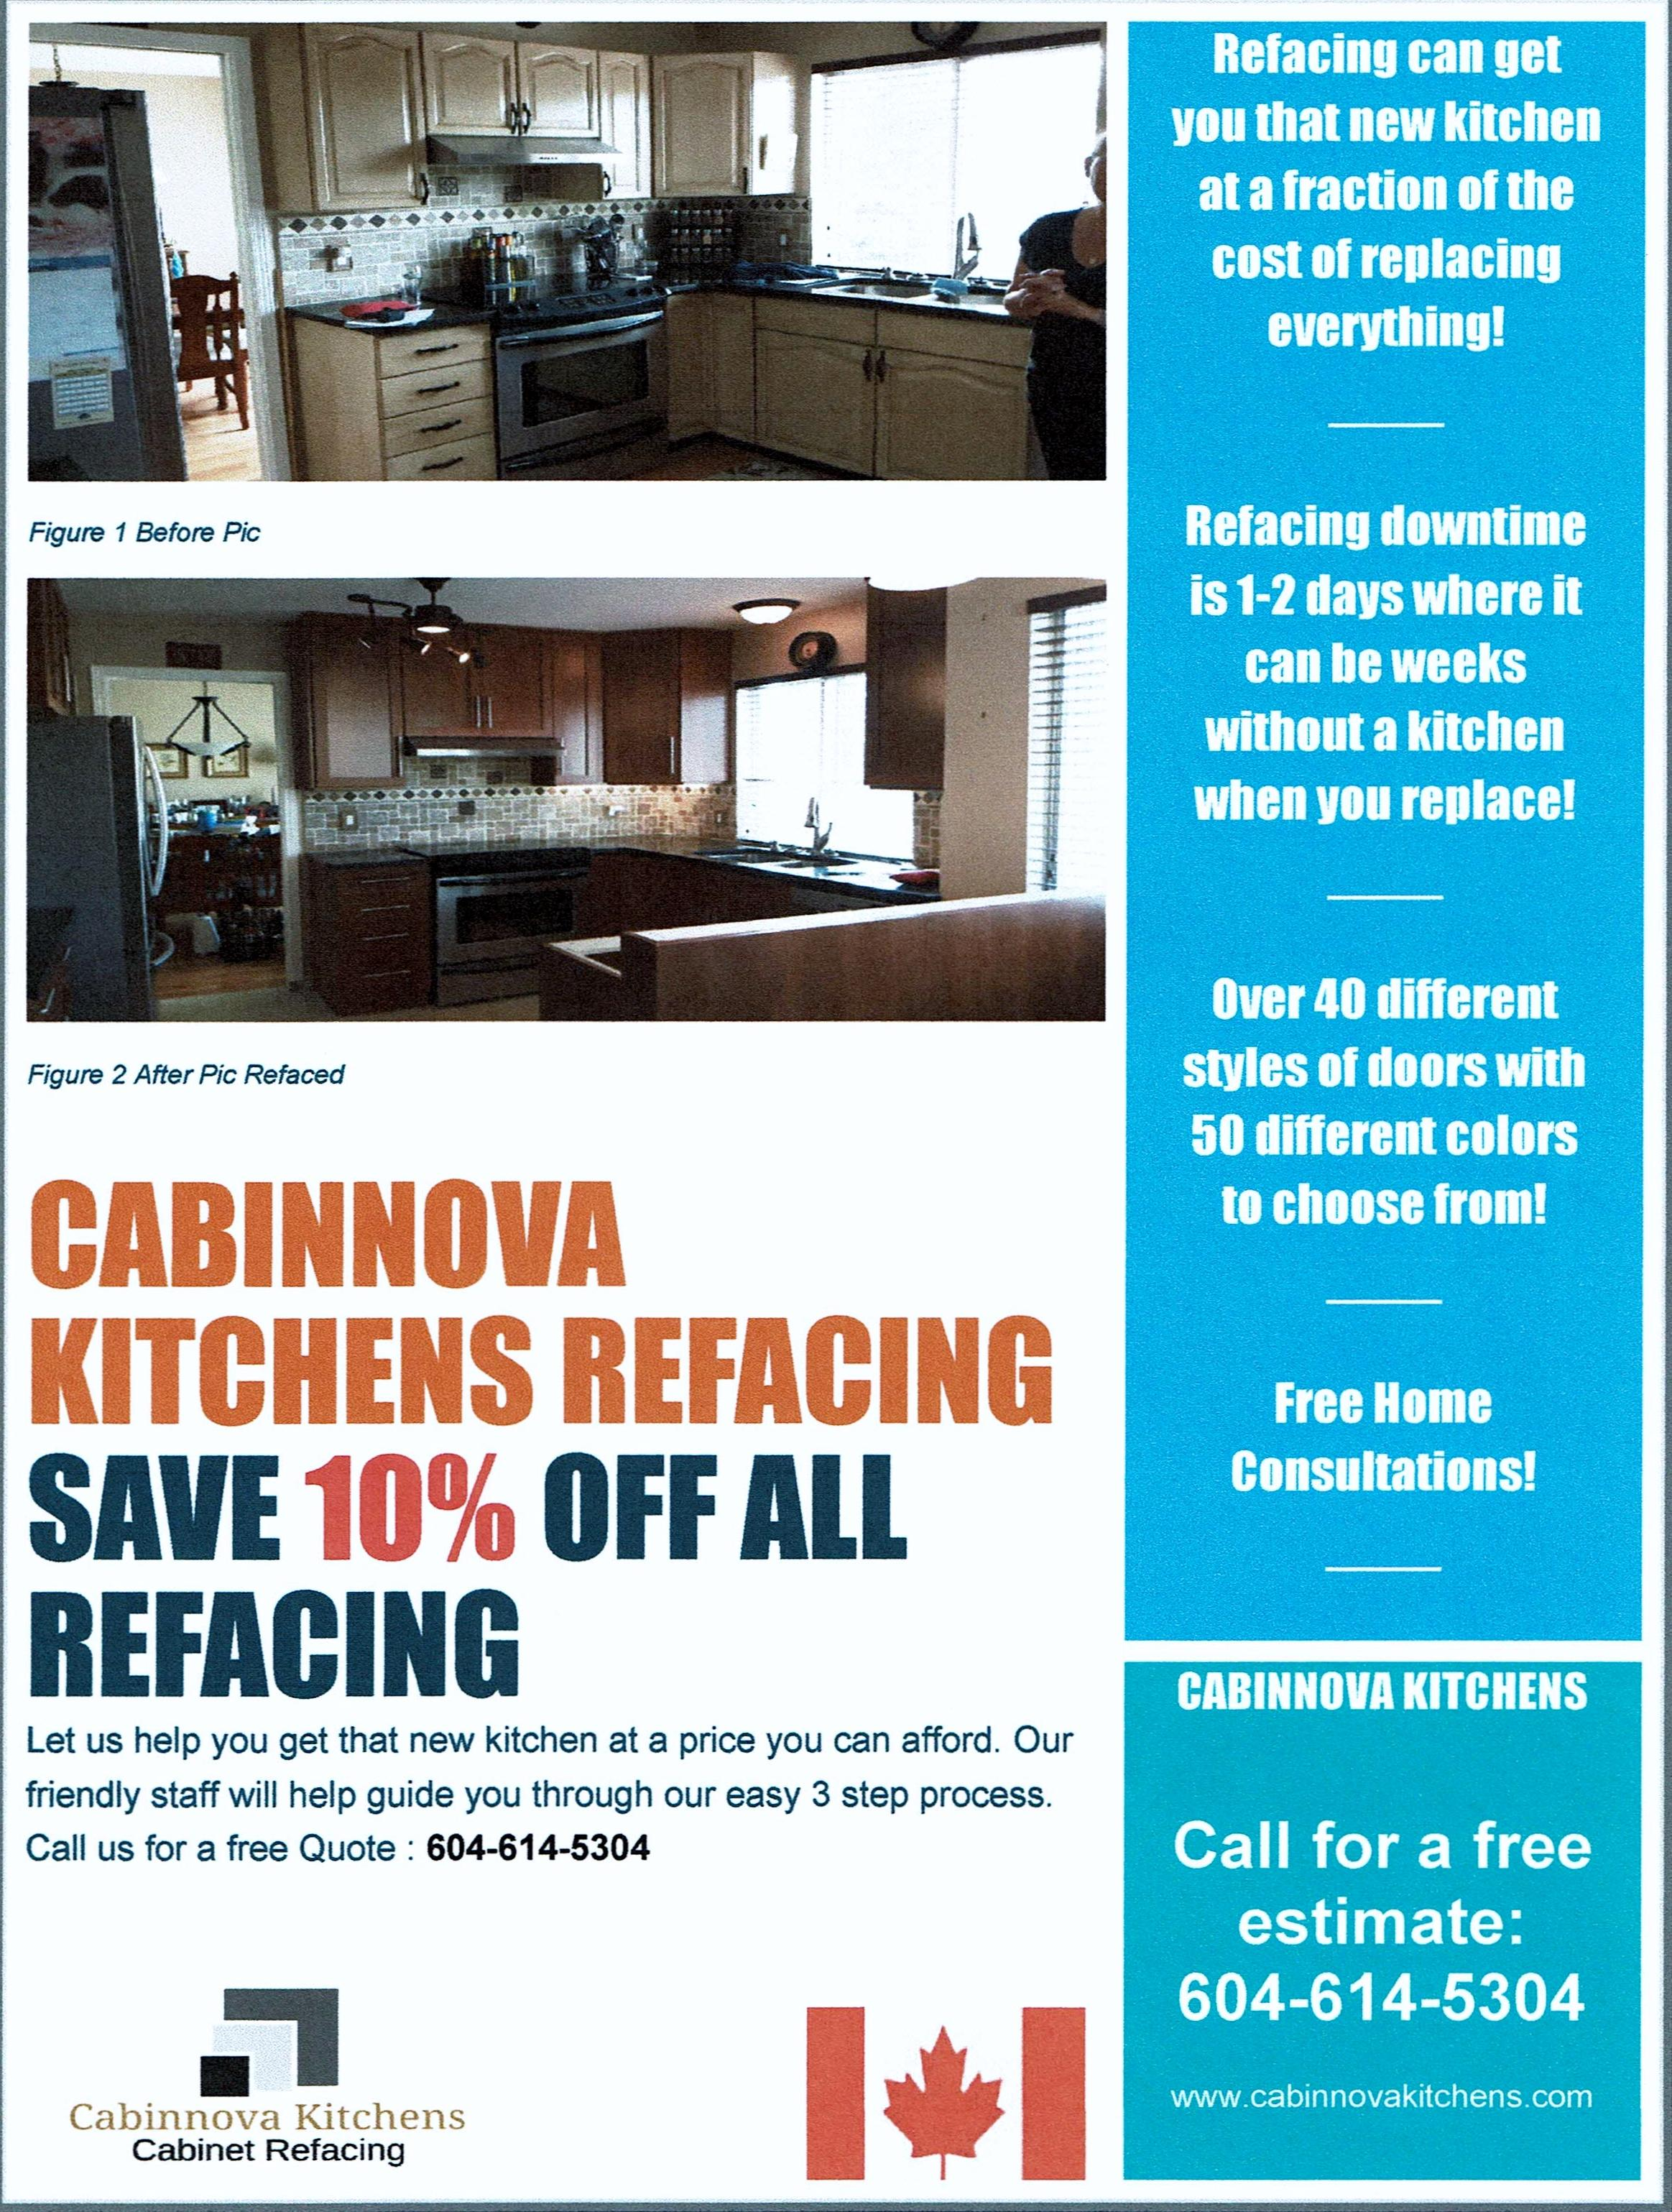 FAQs and Promotions - Cabinnova Kitchens Refacing